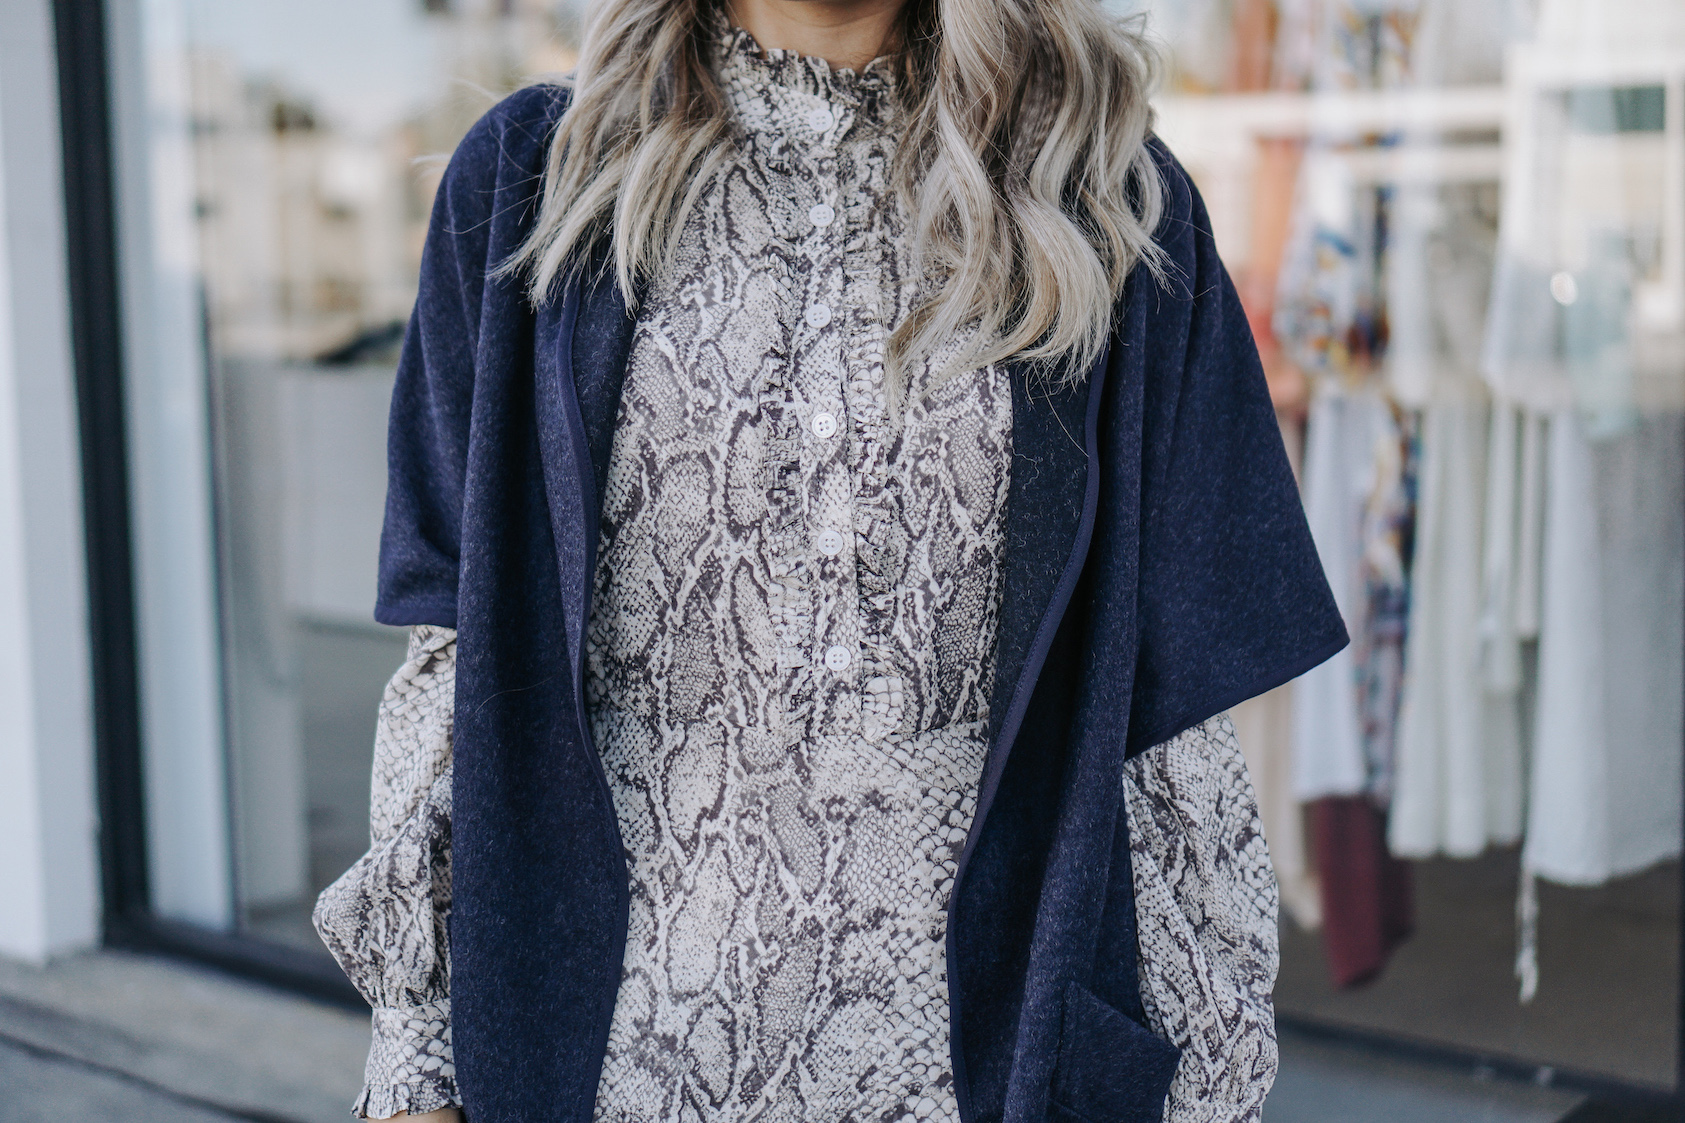 Snakeskin Print Dress // A Week Of Uncompromising Sustainable Style With Sonia Kessler From Native Styling on The Good Trade